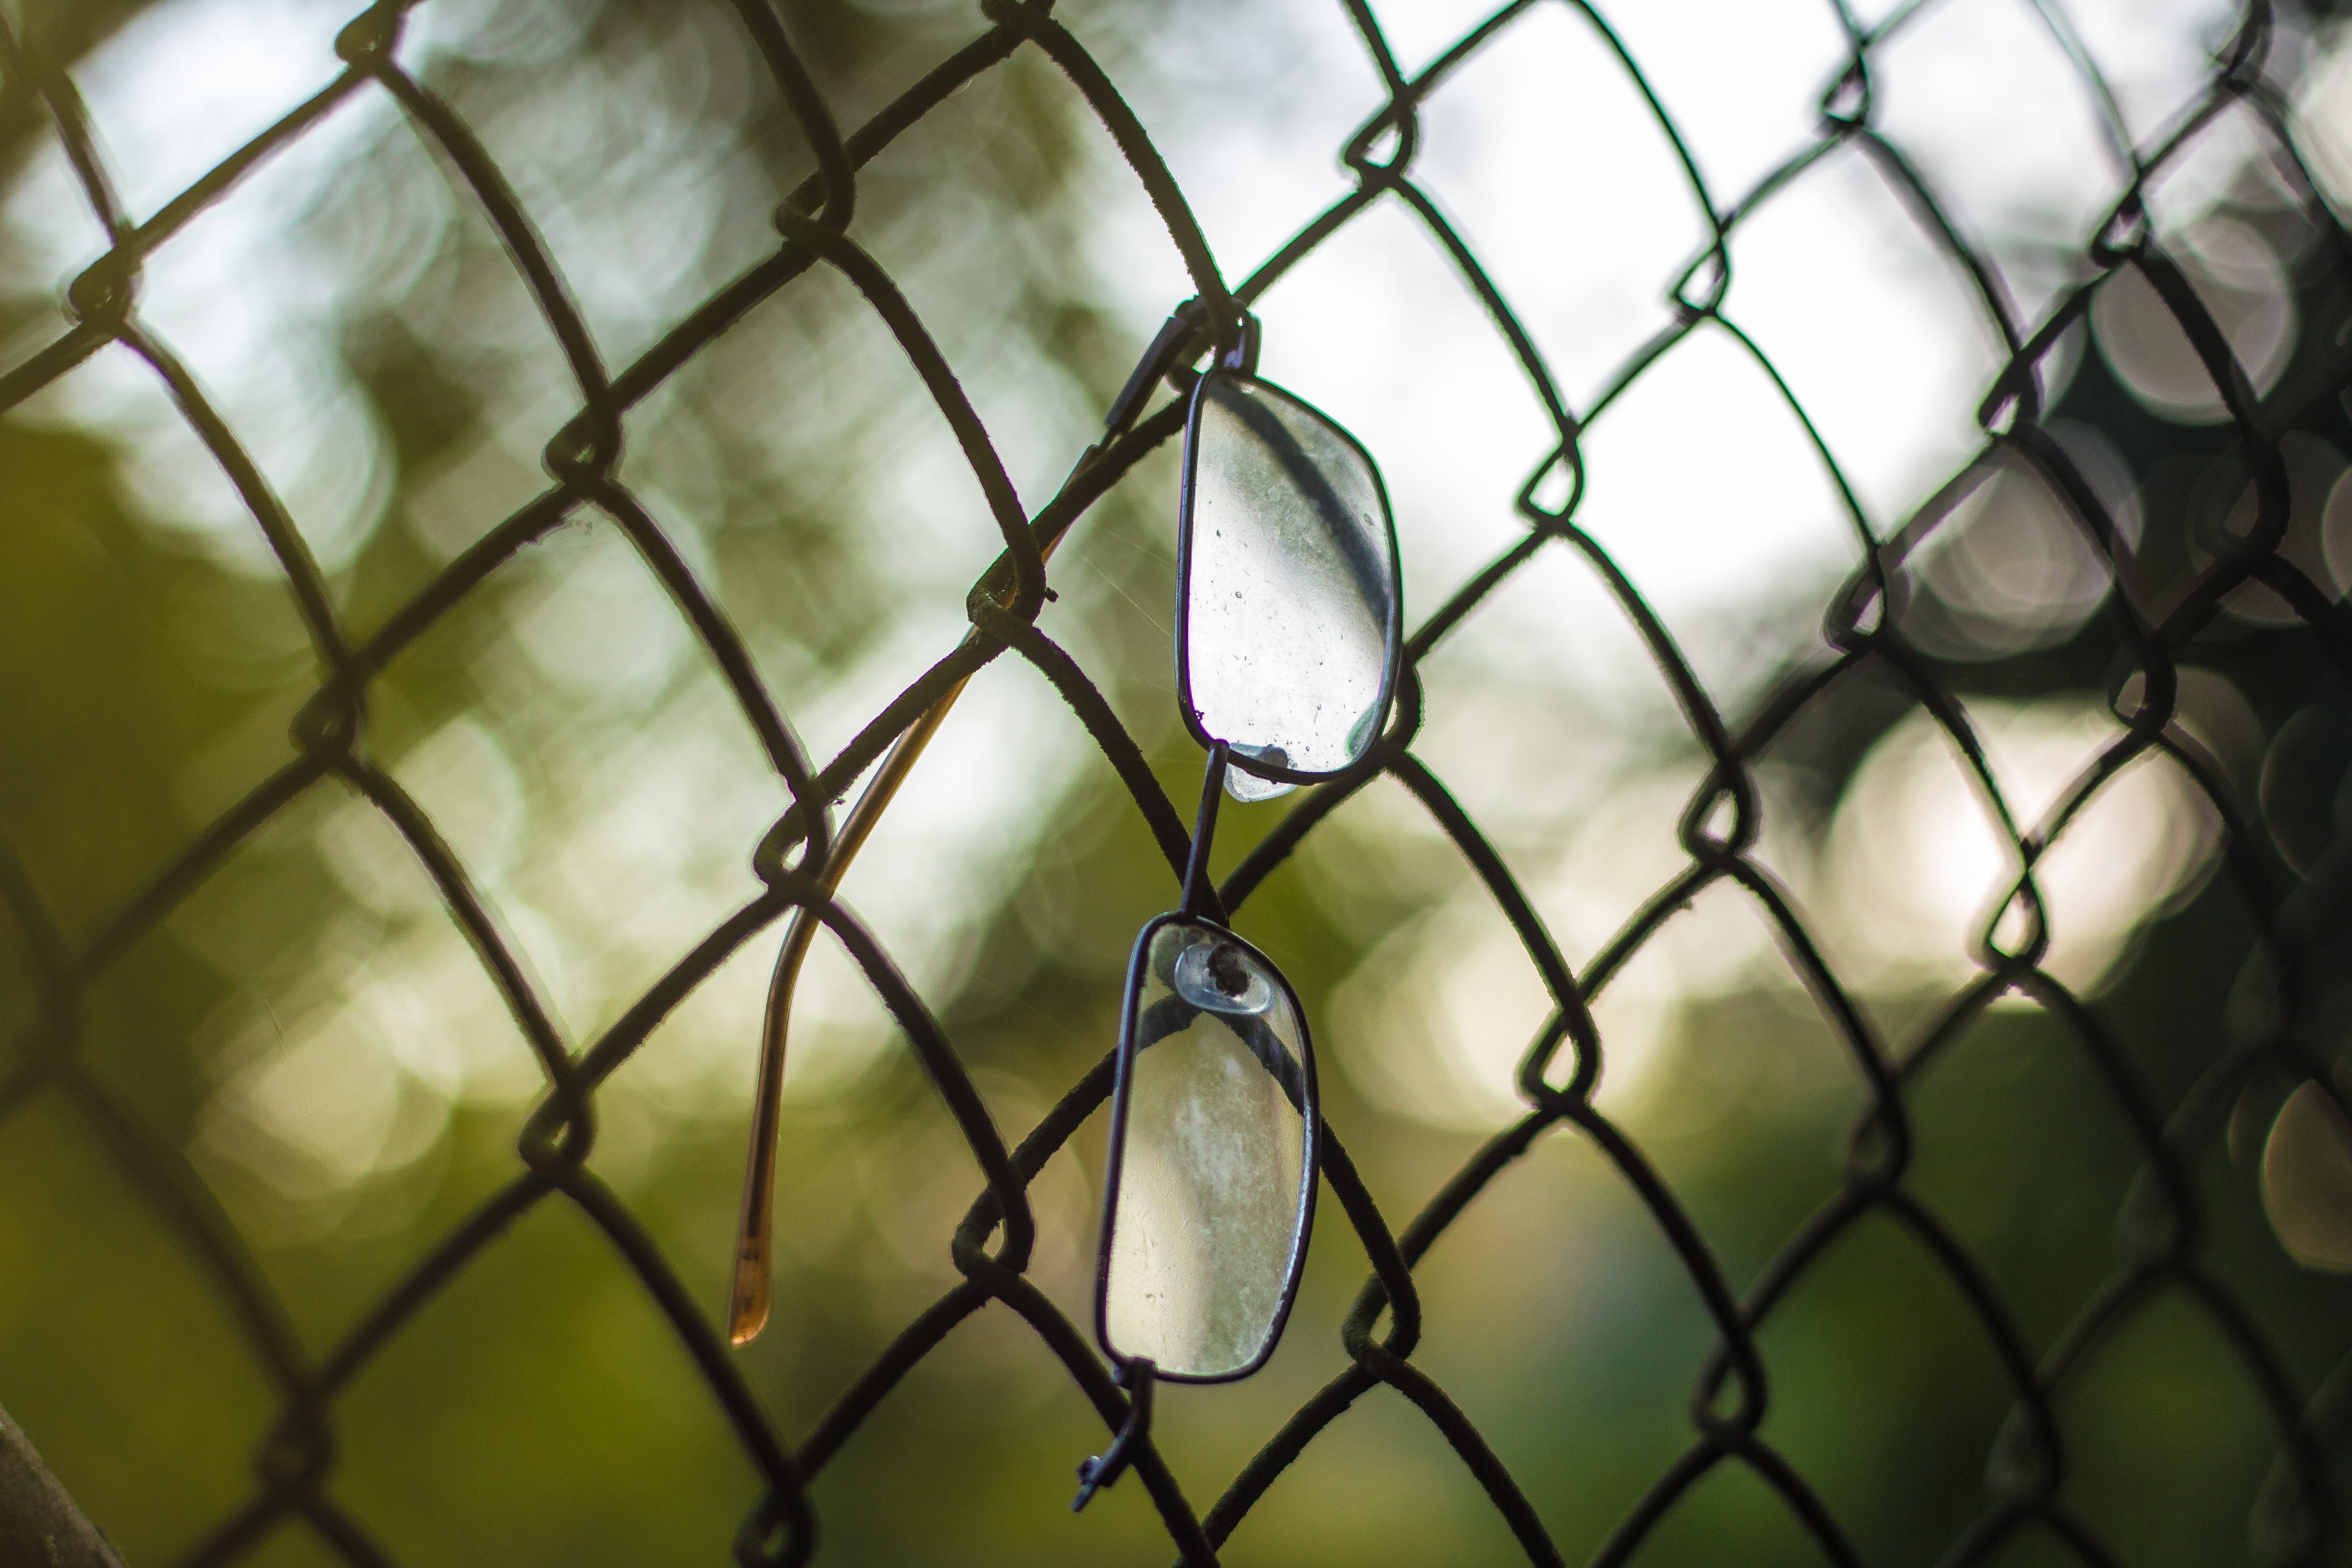 Free stock photo of evening sun, eye glasses, fence